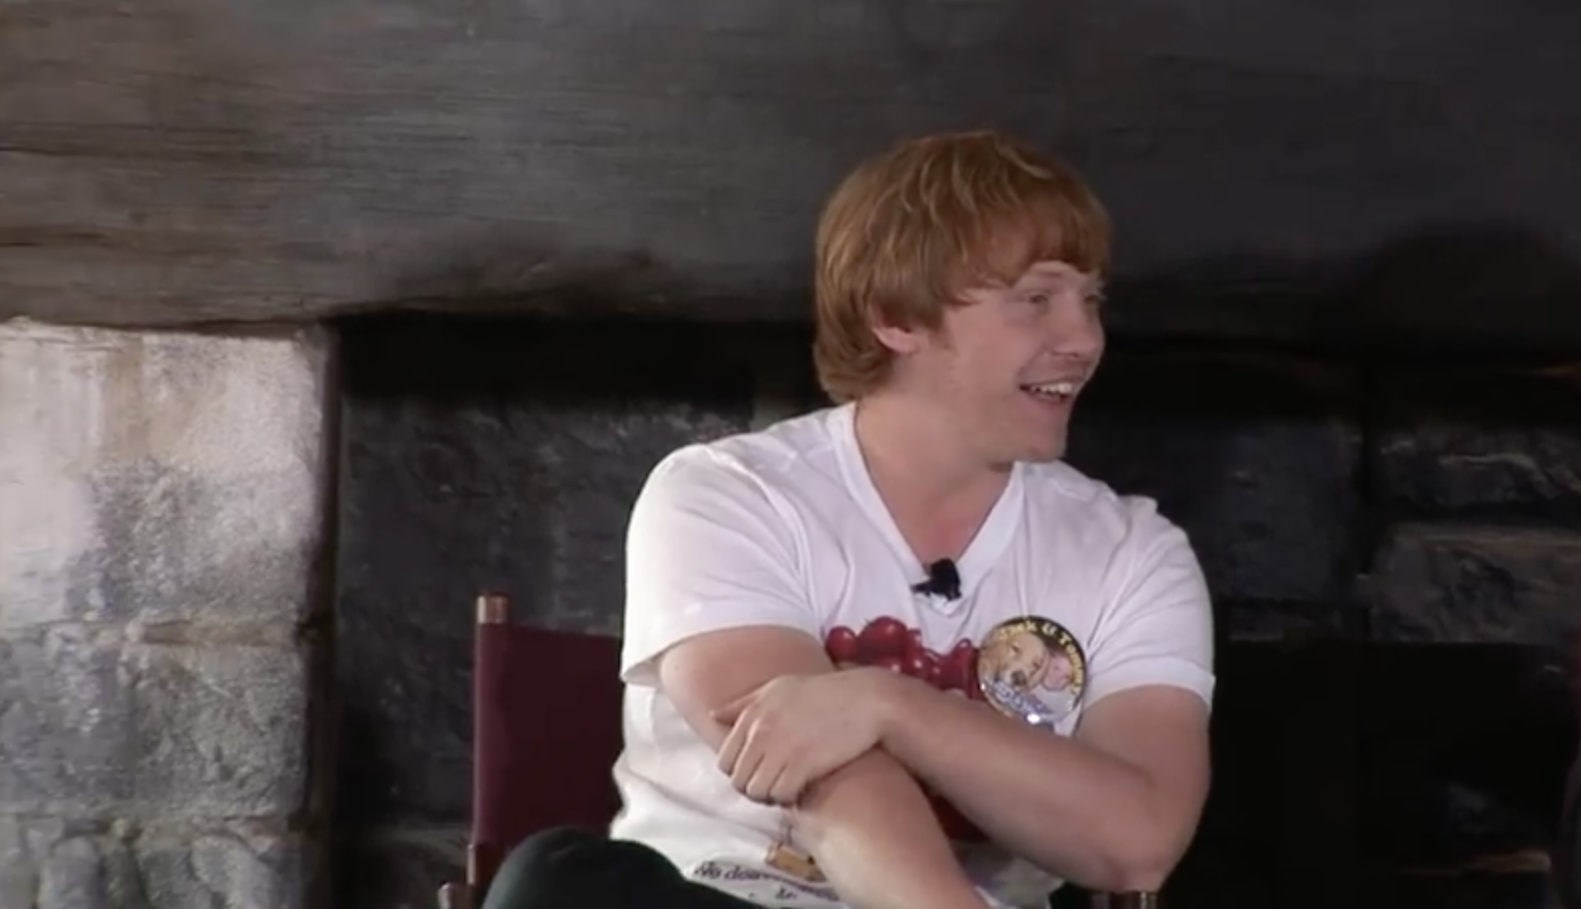 Wizarding World Q&A (Part 2)